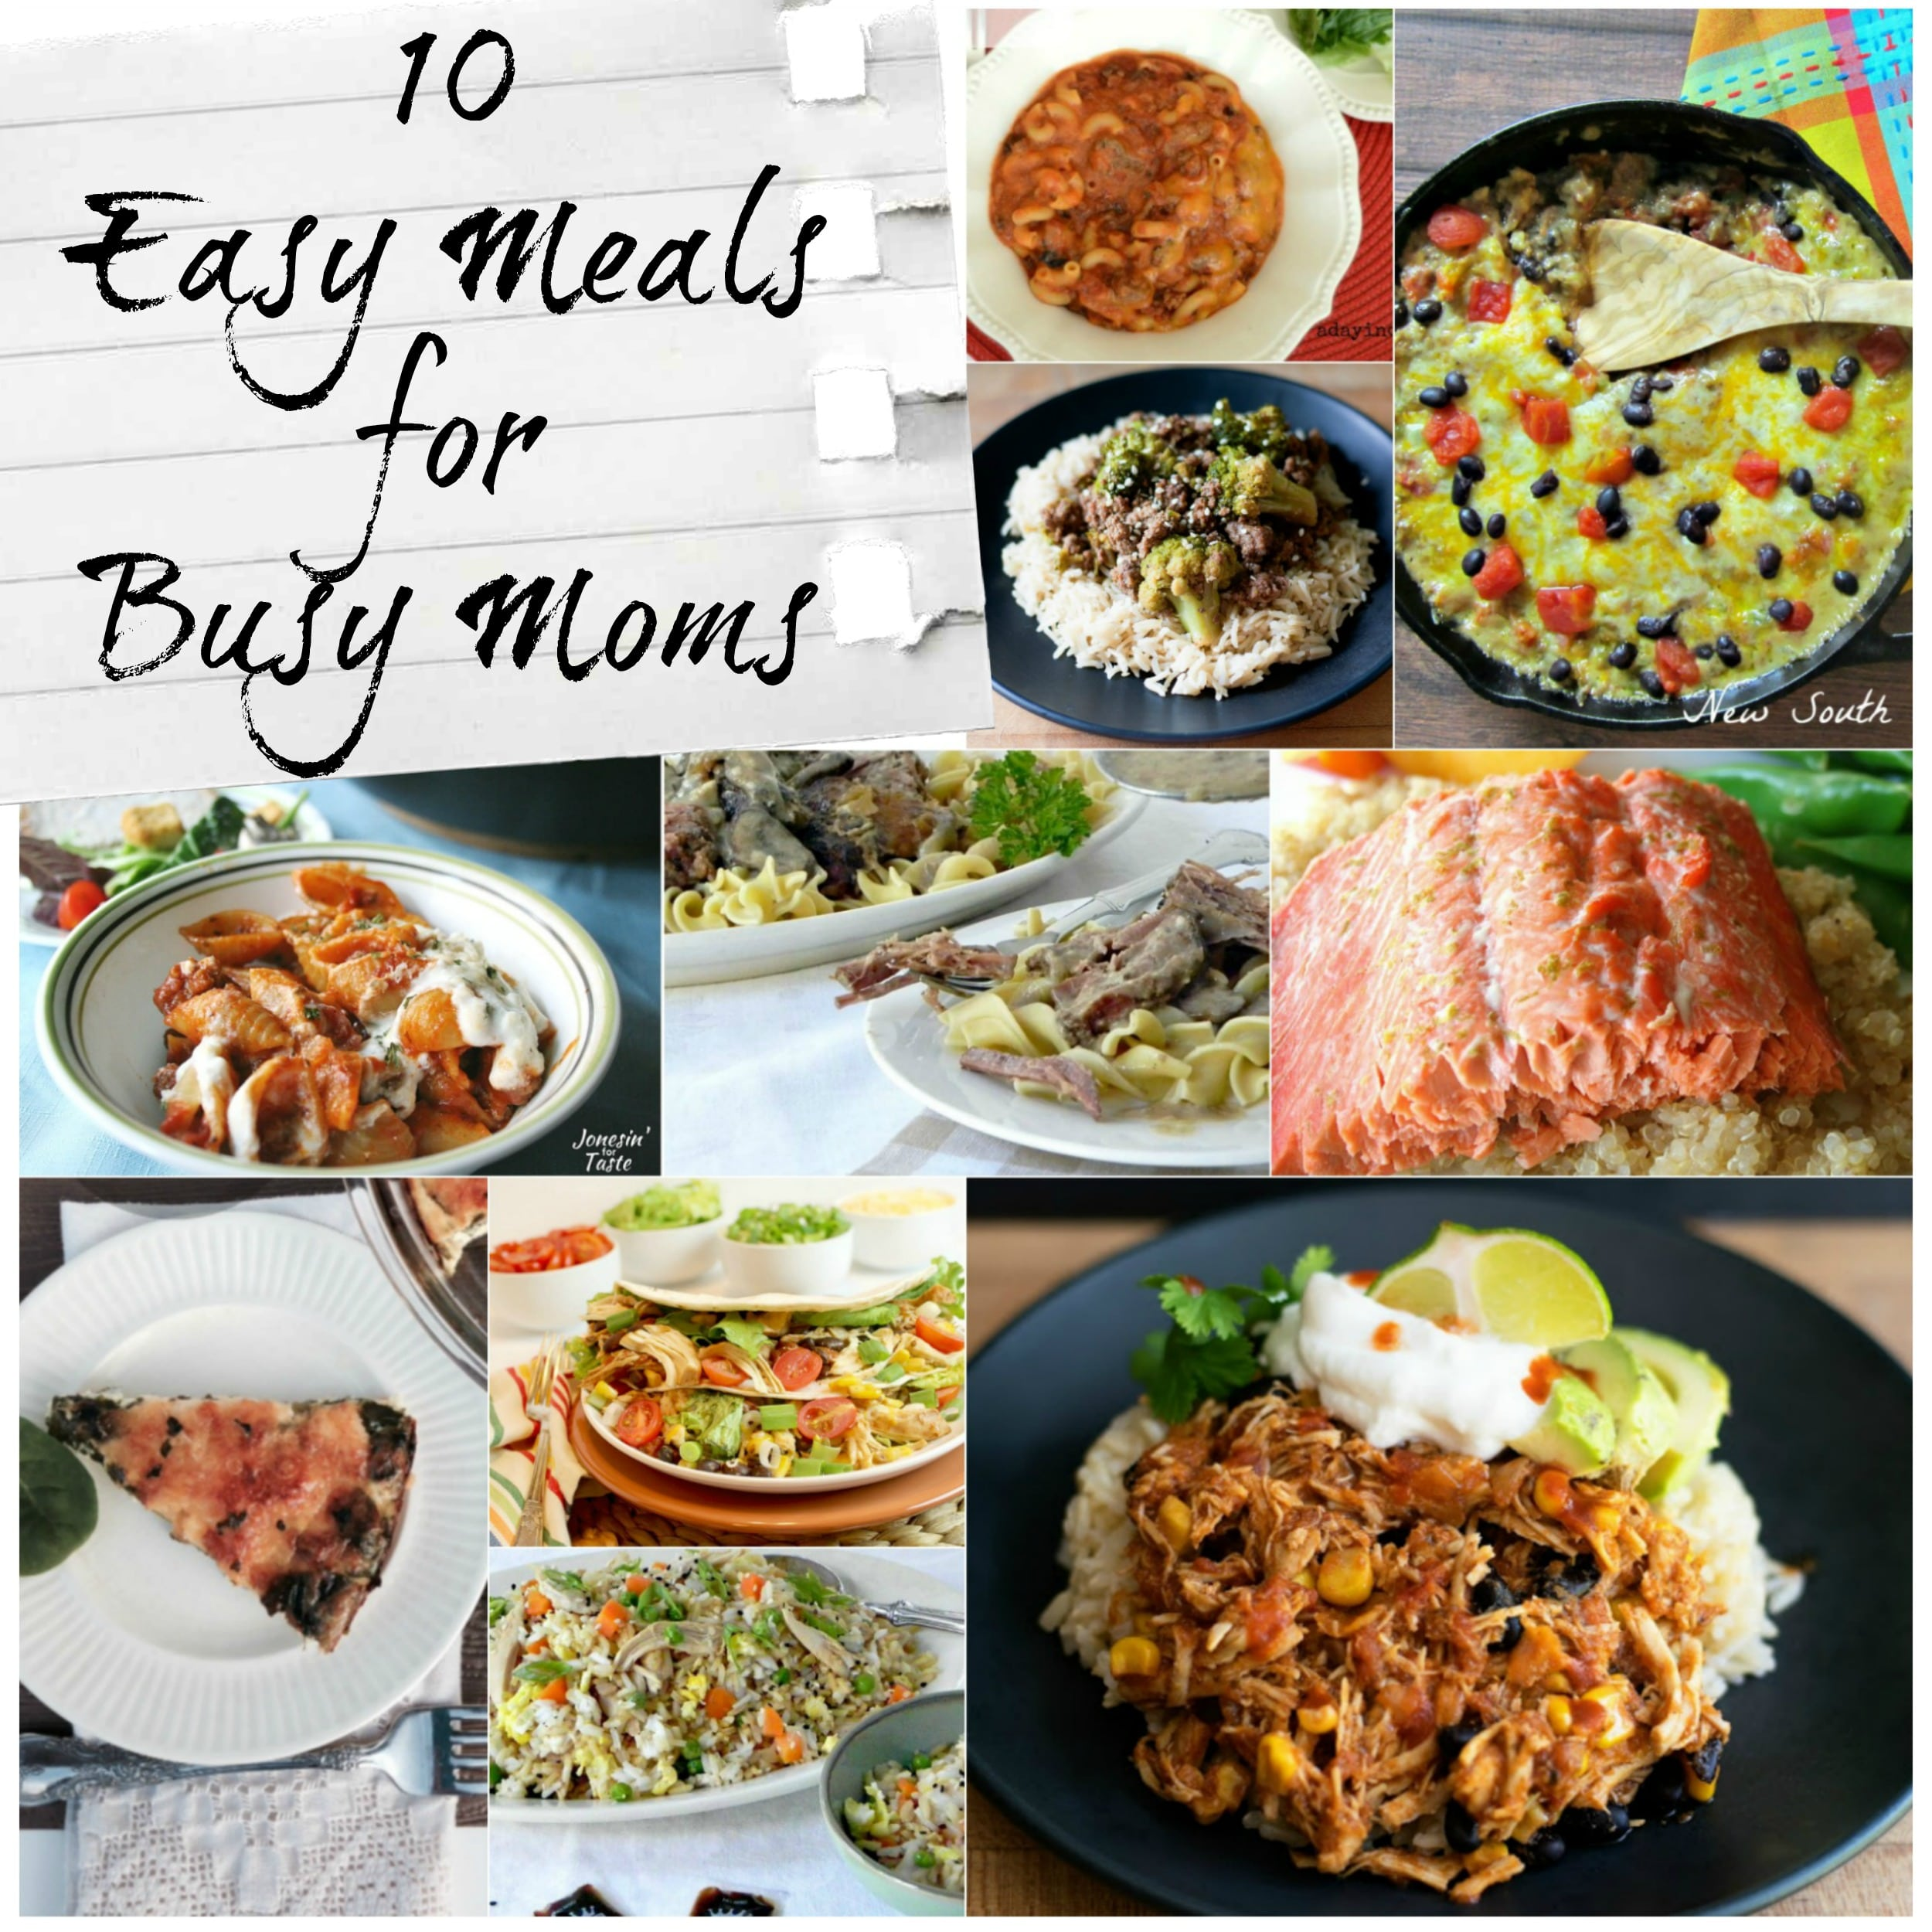 10 Easy Meals for Busy Moms Each of these recipes is guaranteed to help you feed your family a wholesome, home-cooked meal even on the busiest nights.